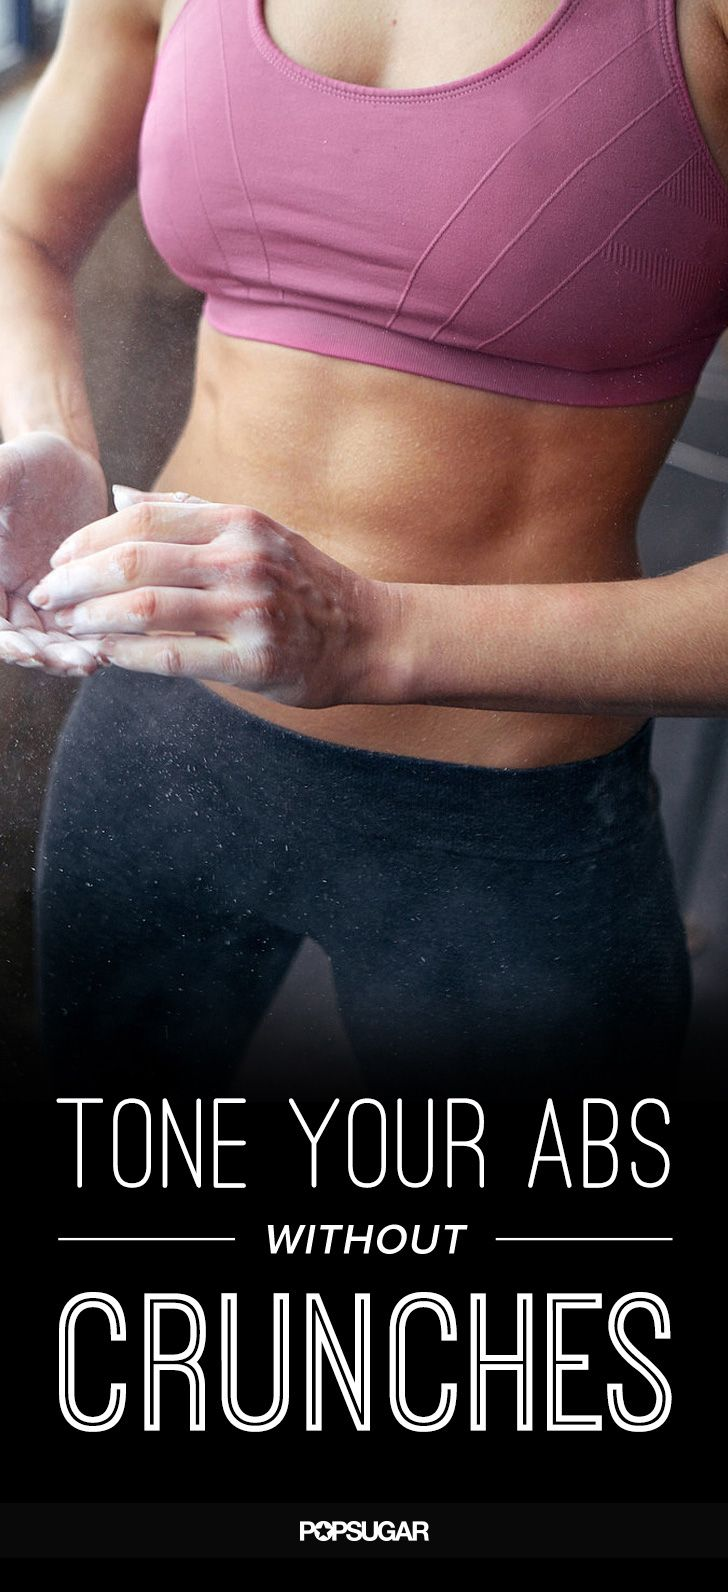 How to get tight, tones abs sans crunches.